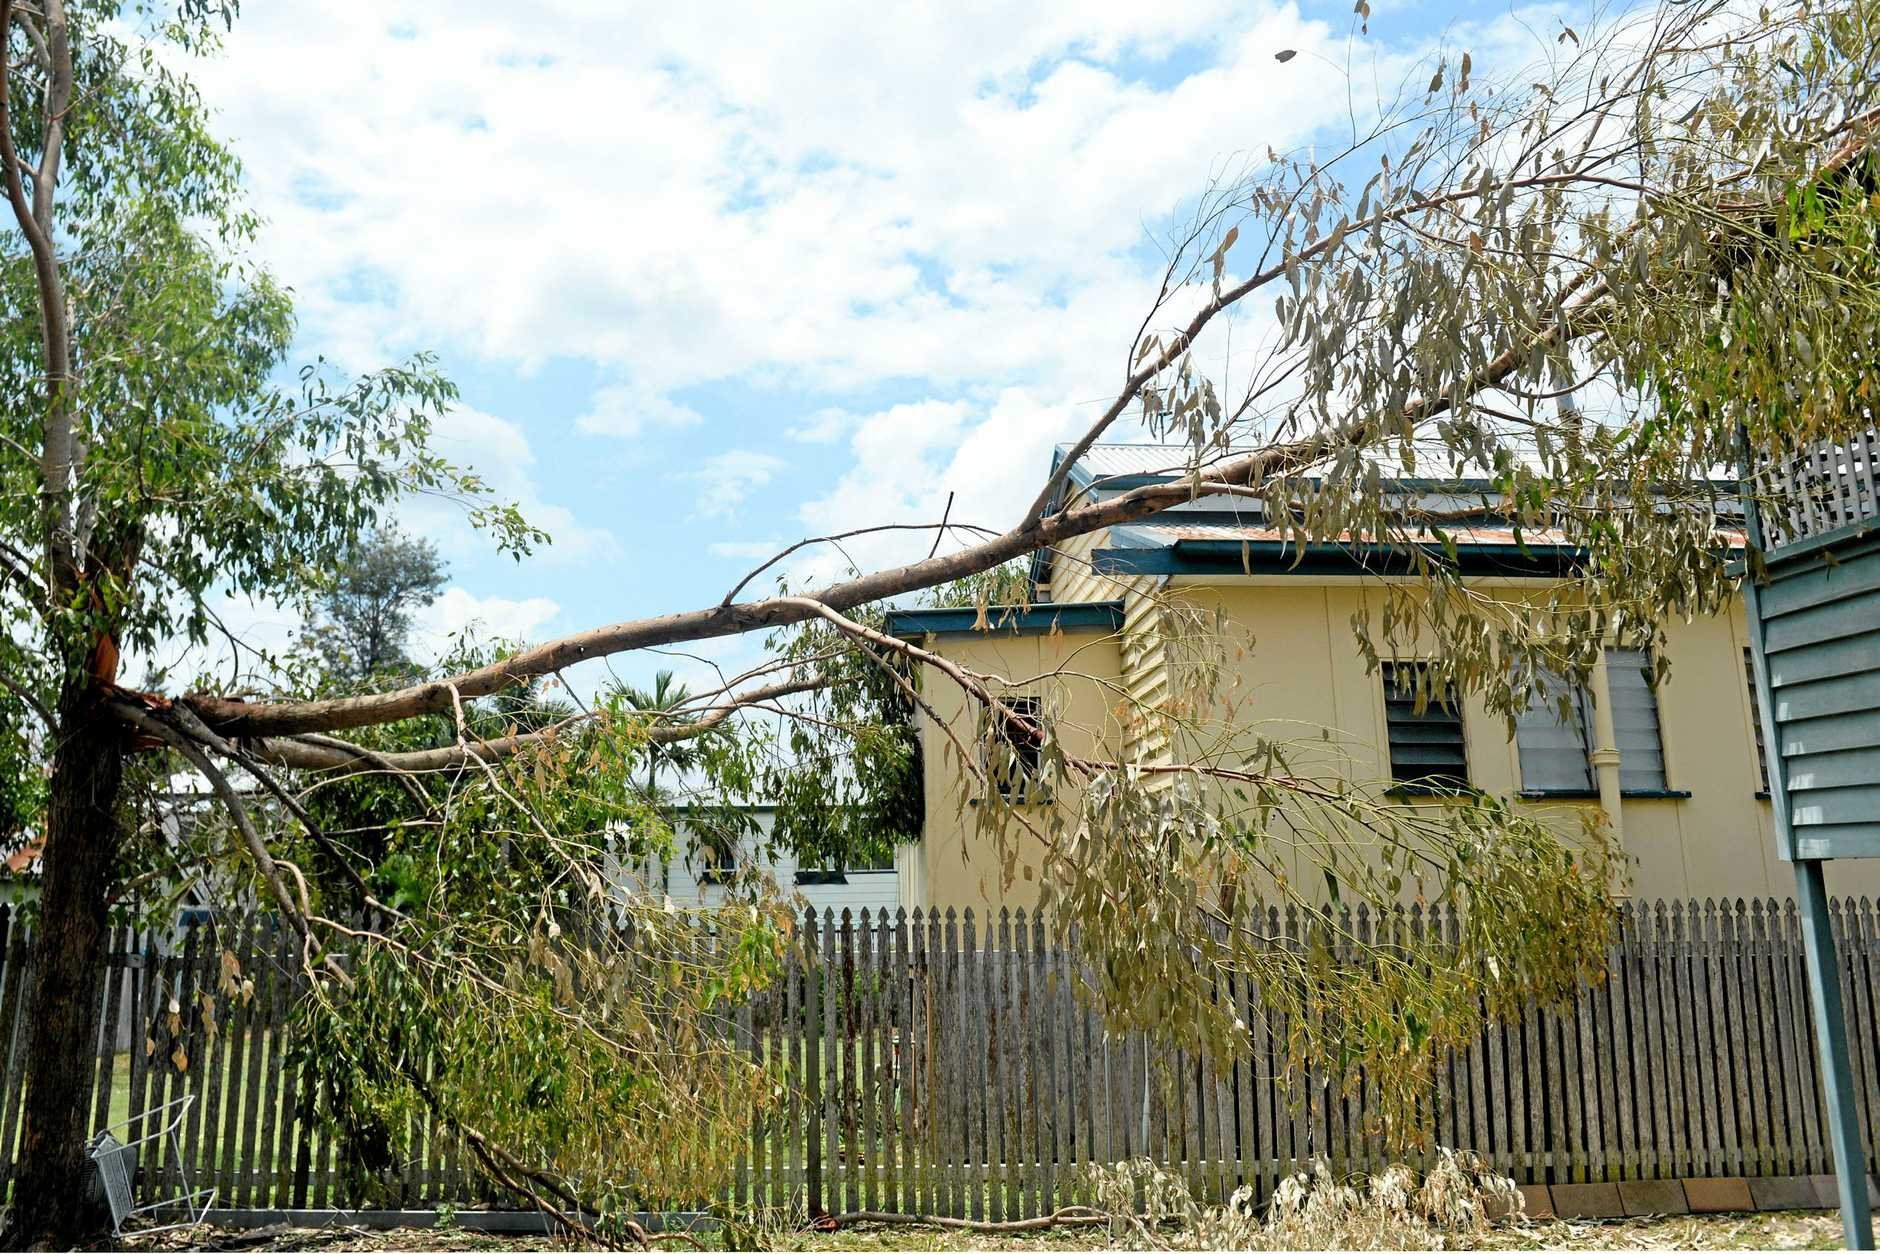 December's violent storm brought this tree down onto both neighbours' roofs